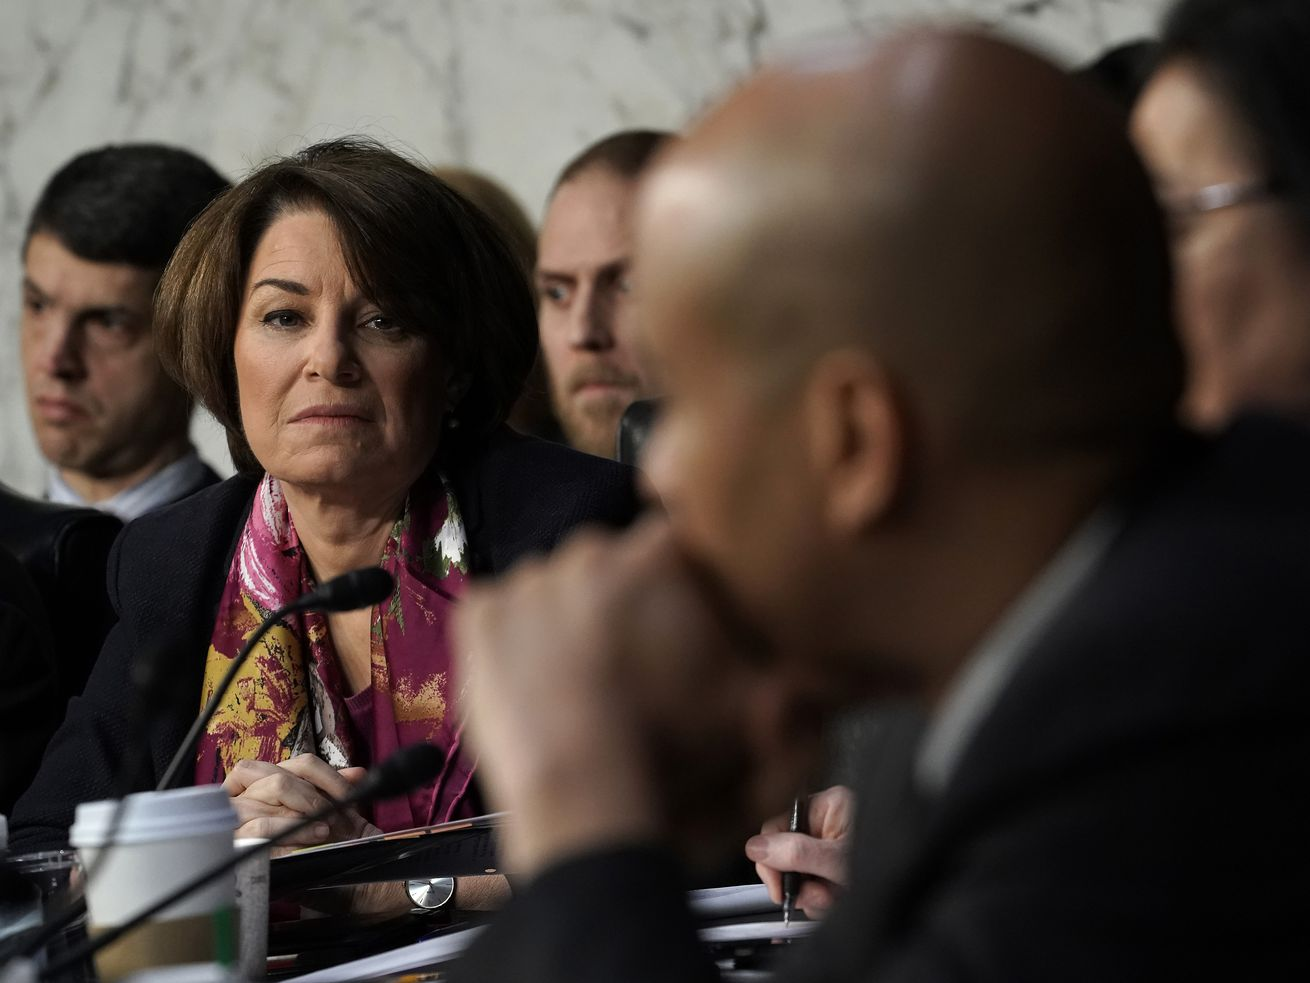 Sen. Amy Klobuchar listens to testimony during William Barr's confirmation hearing to become US attorney general in January 2019.